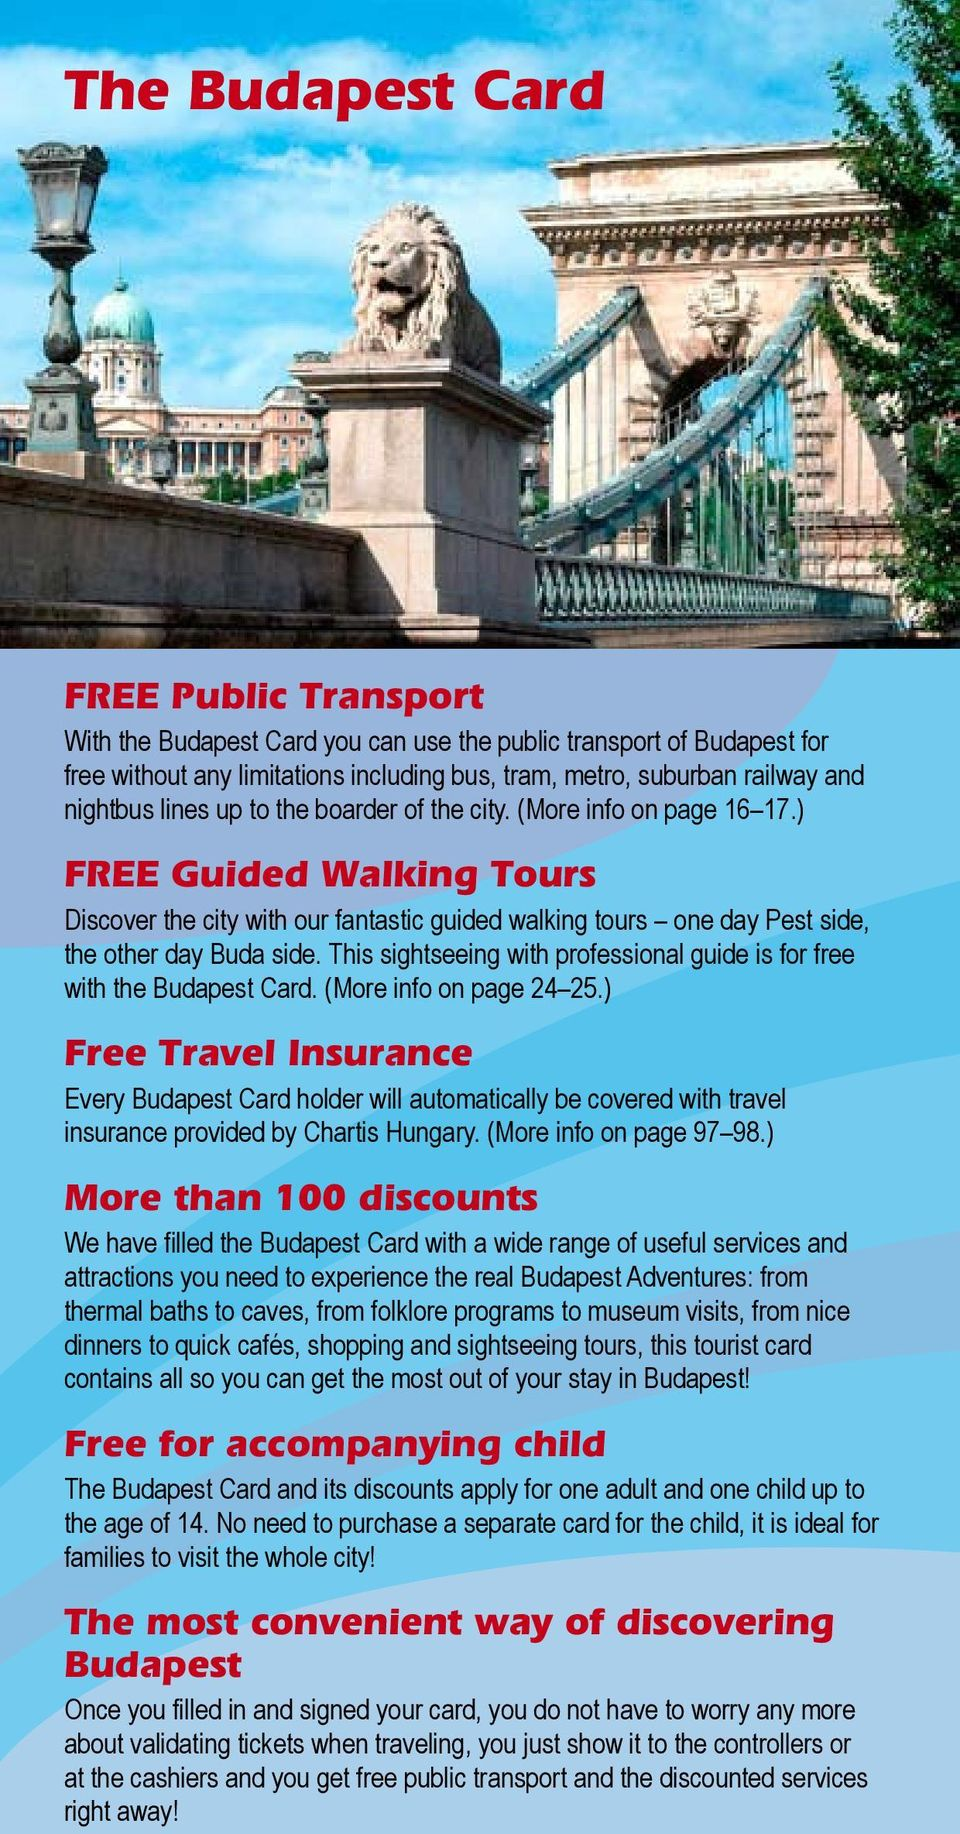 ) FREE Guided Walking Tours Discover the city with our fantastic guided walking tours one day Pest side, the other day Buda side.